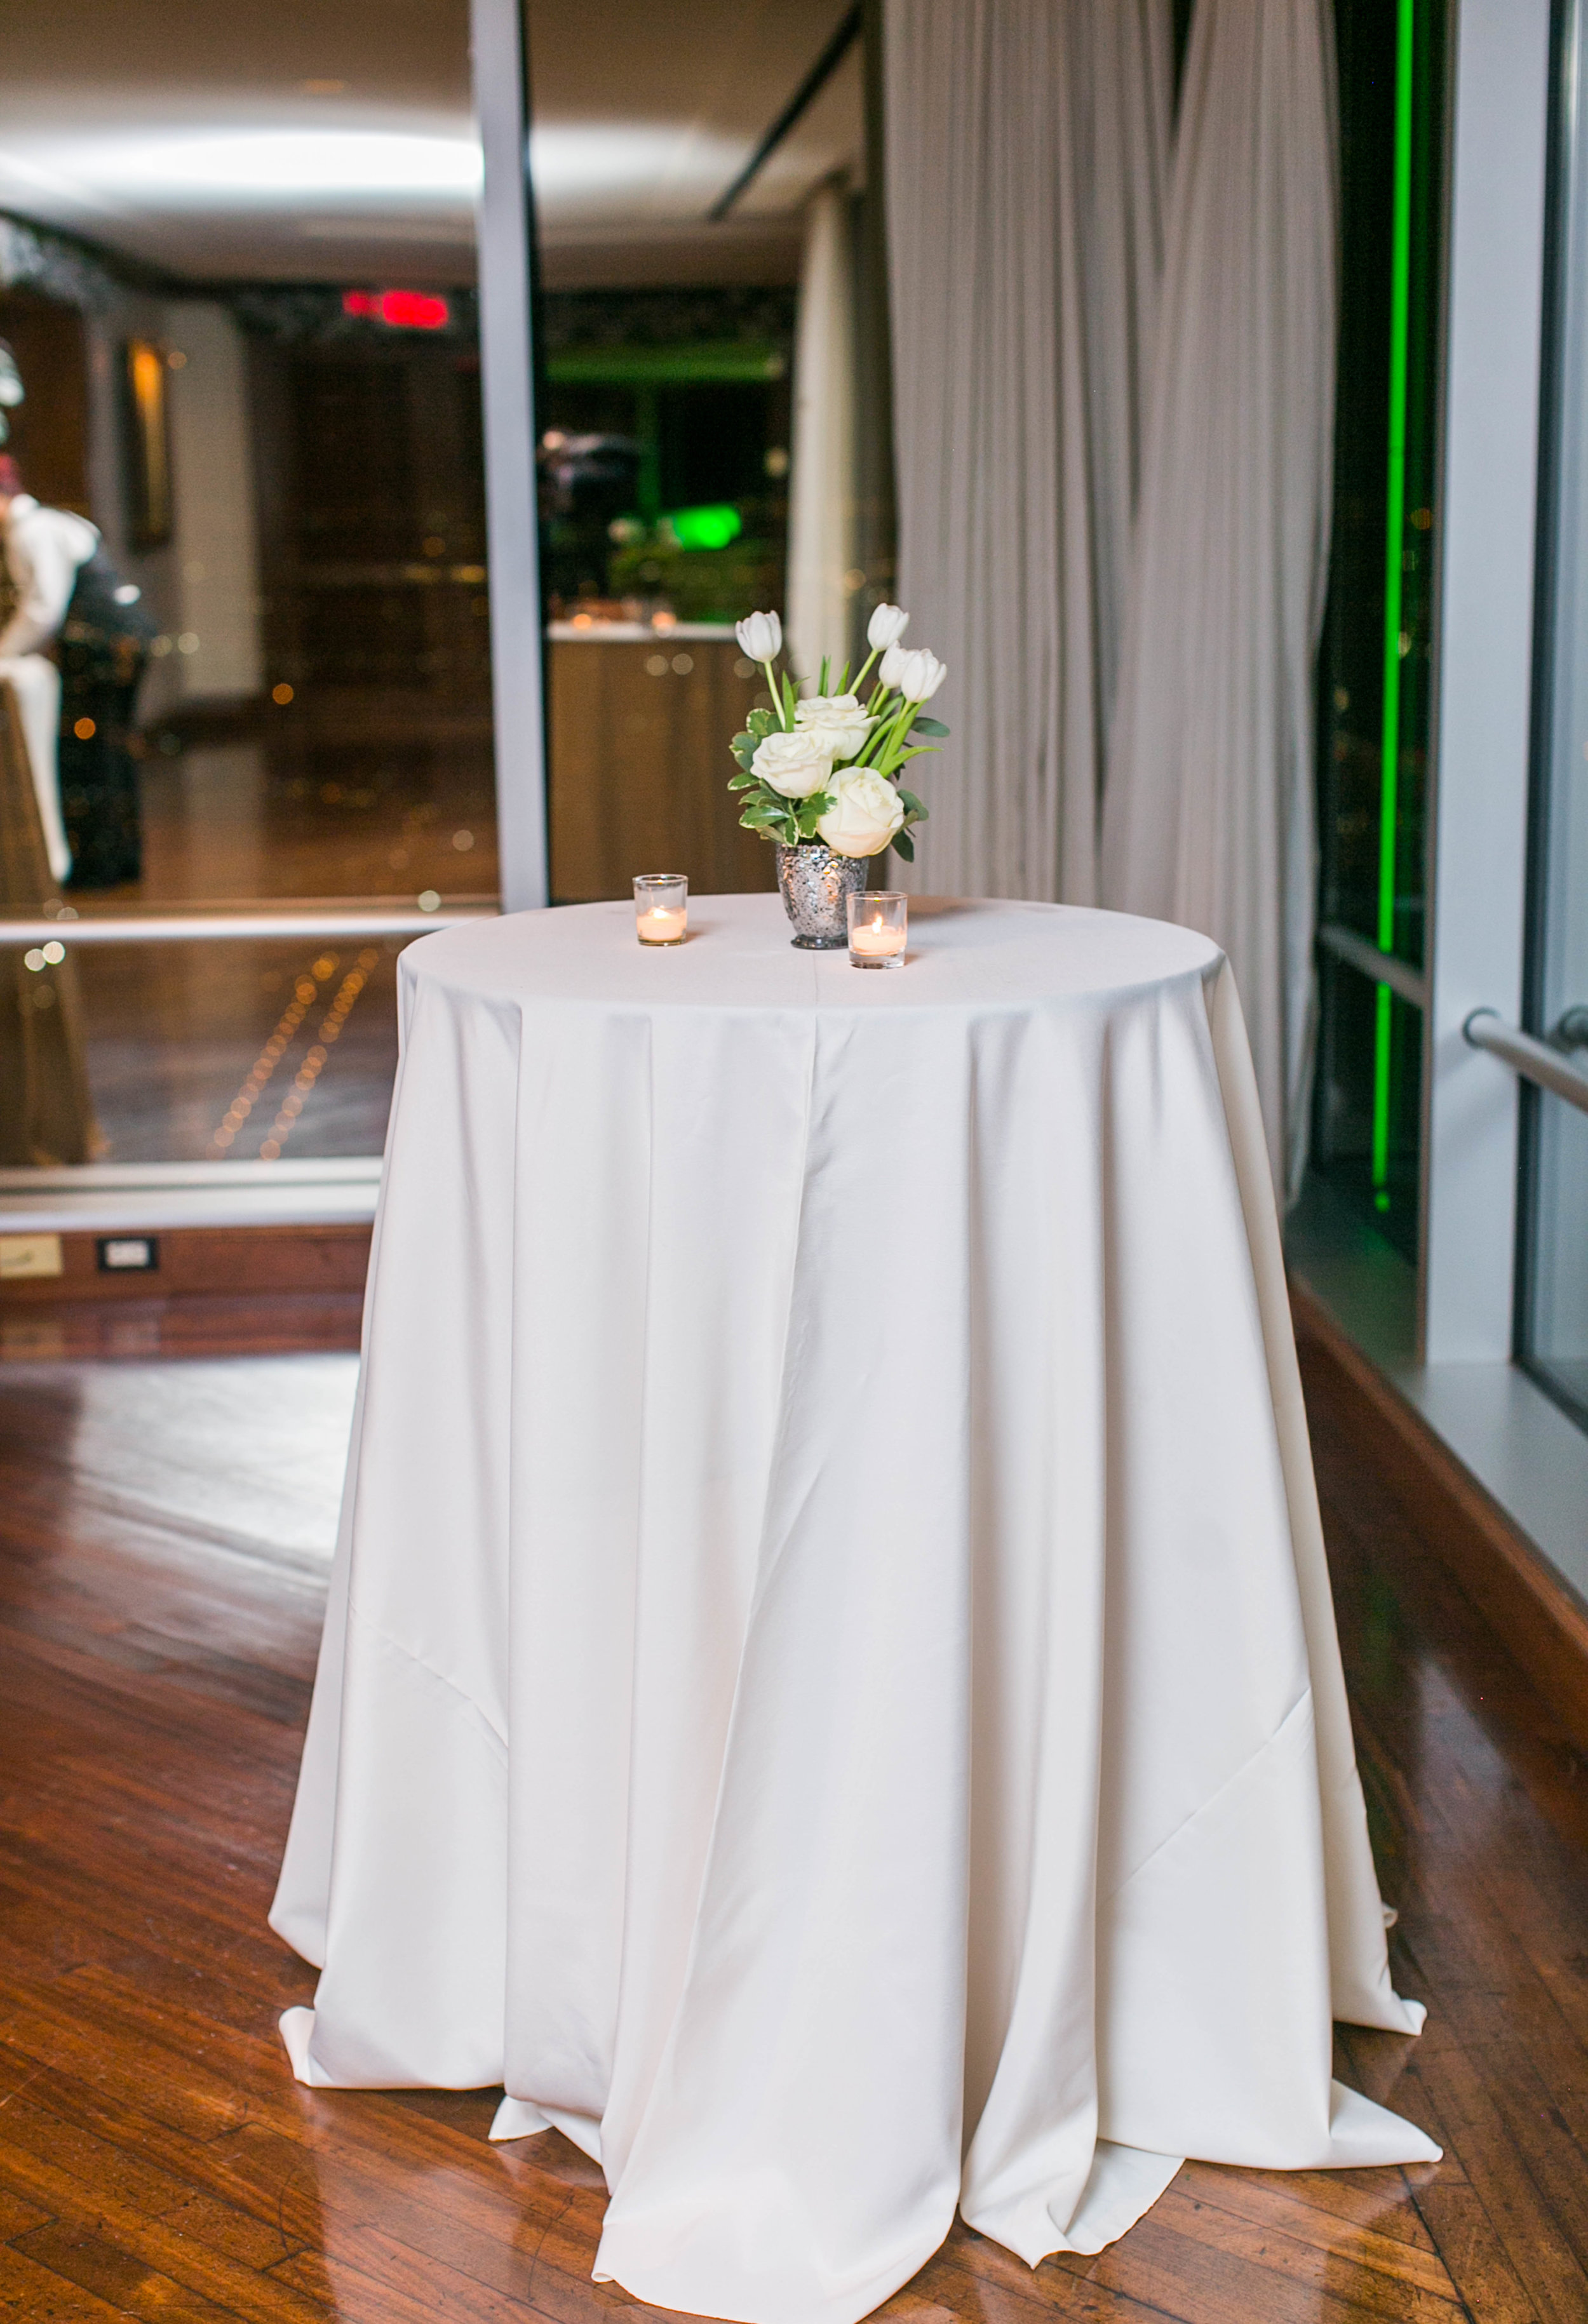 Our venue was on the 69th floor of a building in downtown Dallas, so we only had five of these high boy tables set up around the windows.